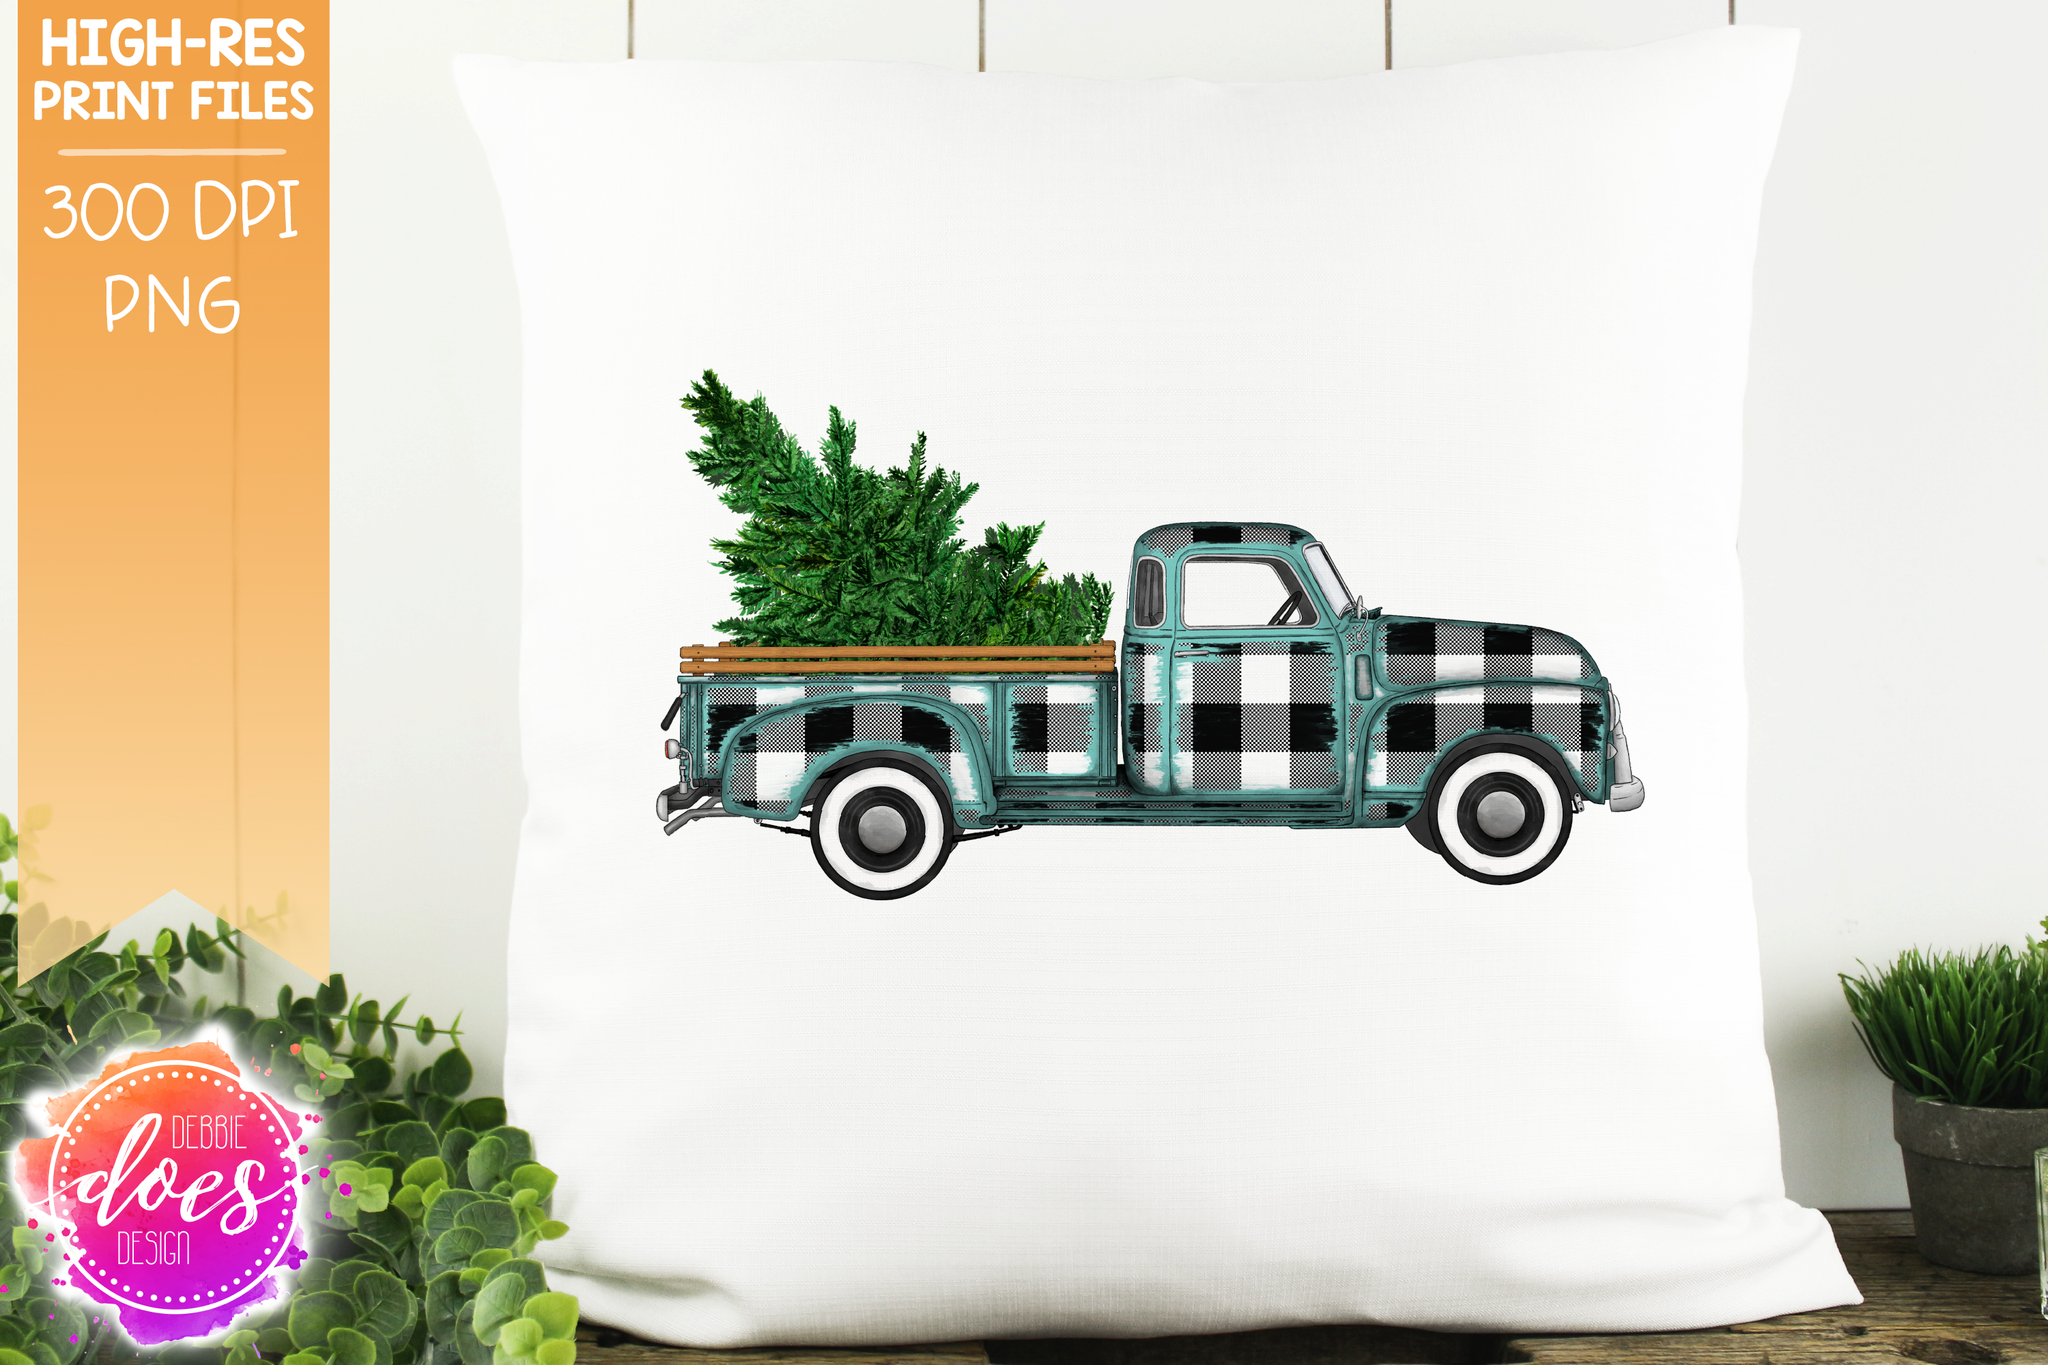 Christmas Tree Truck - Mint Plaid - Sublimation/Printable Design